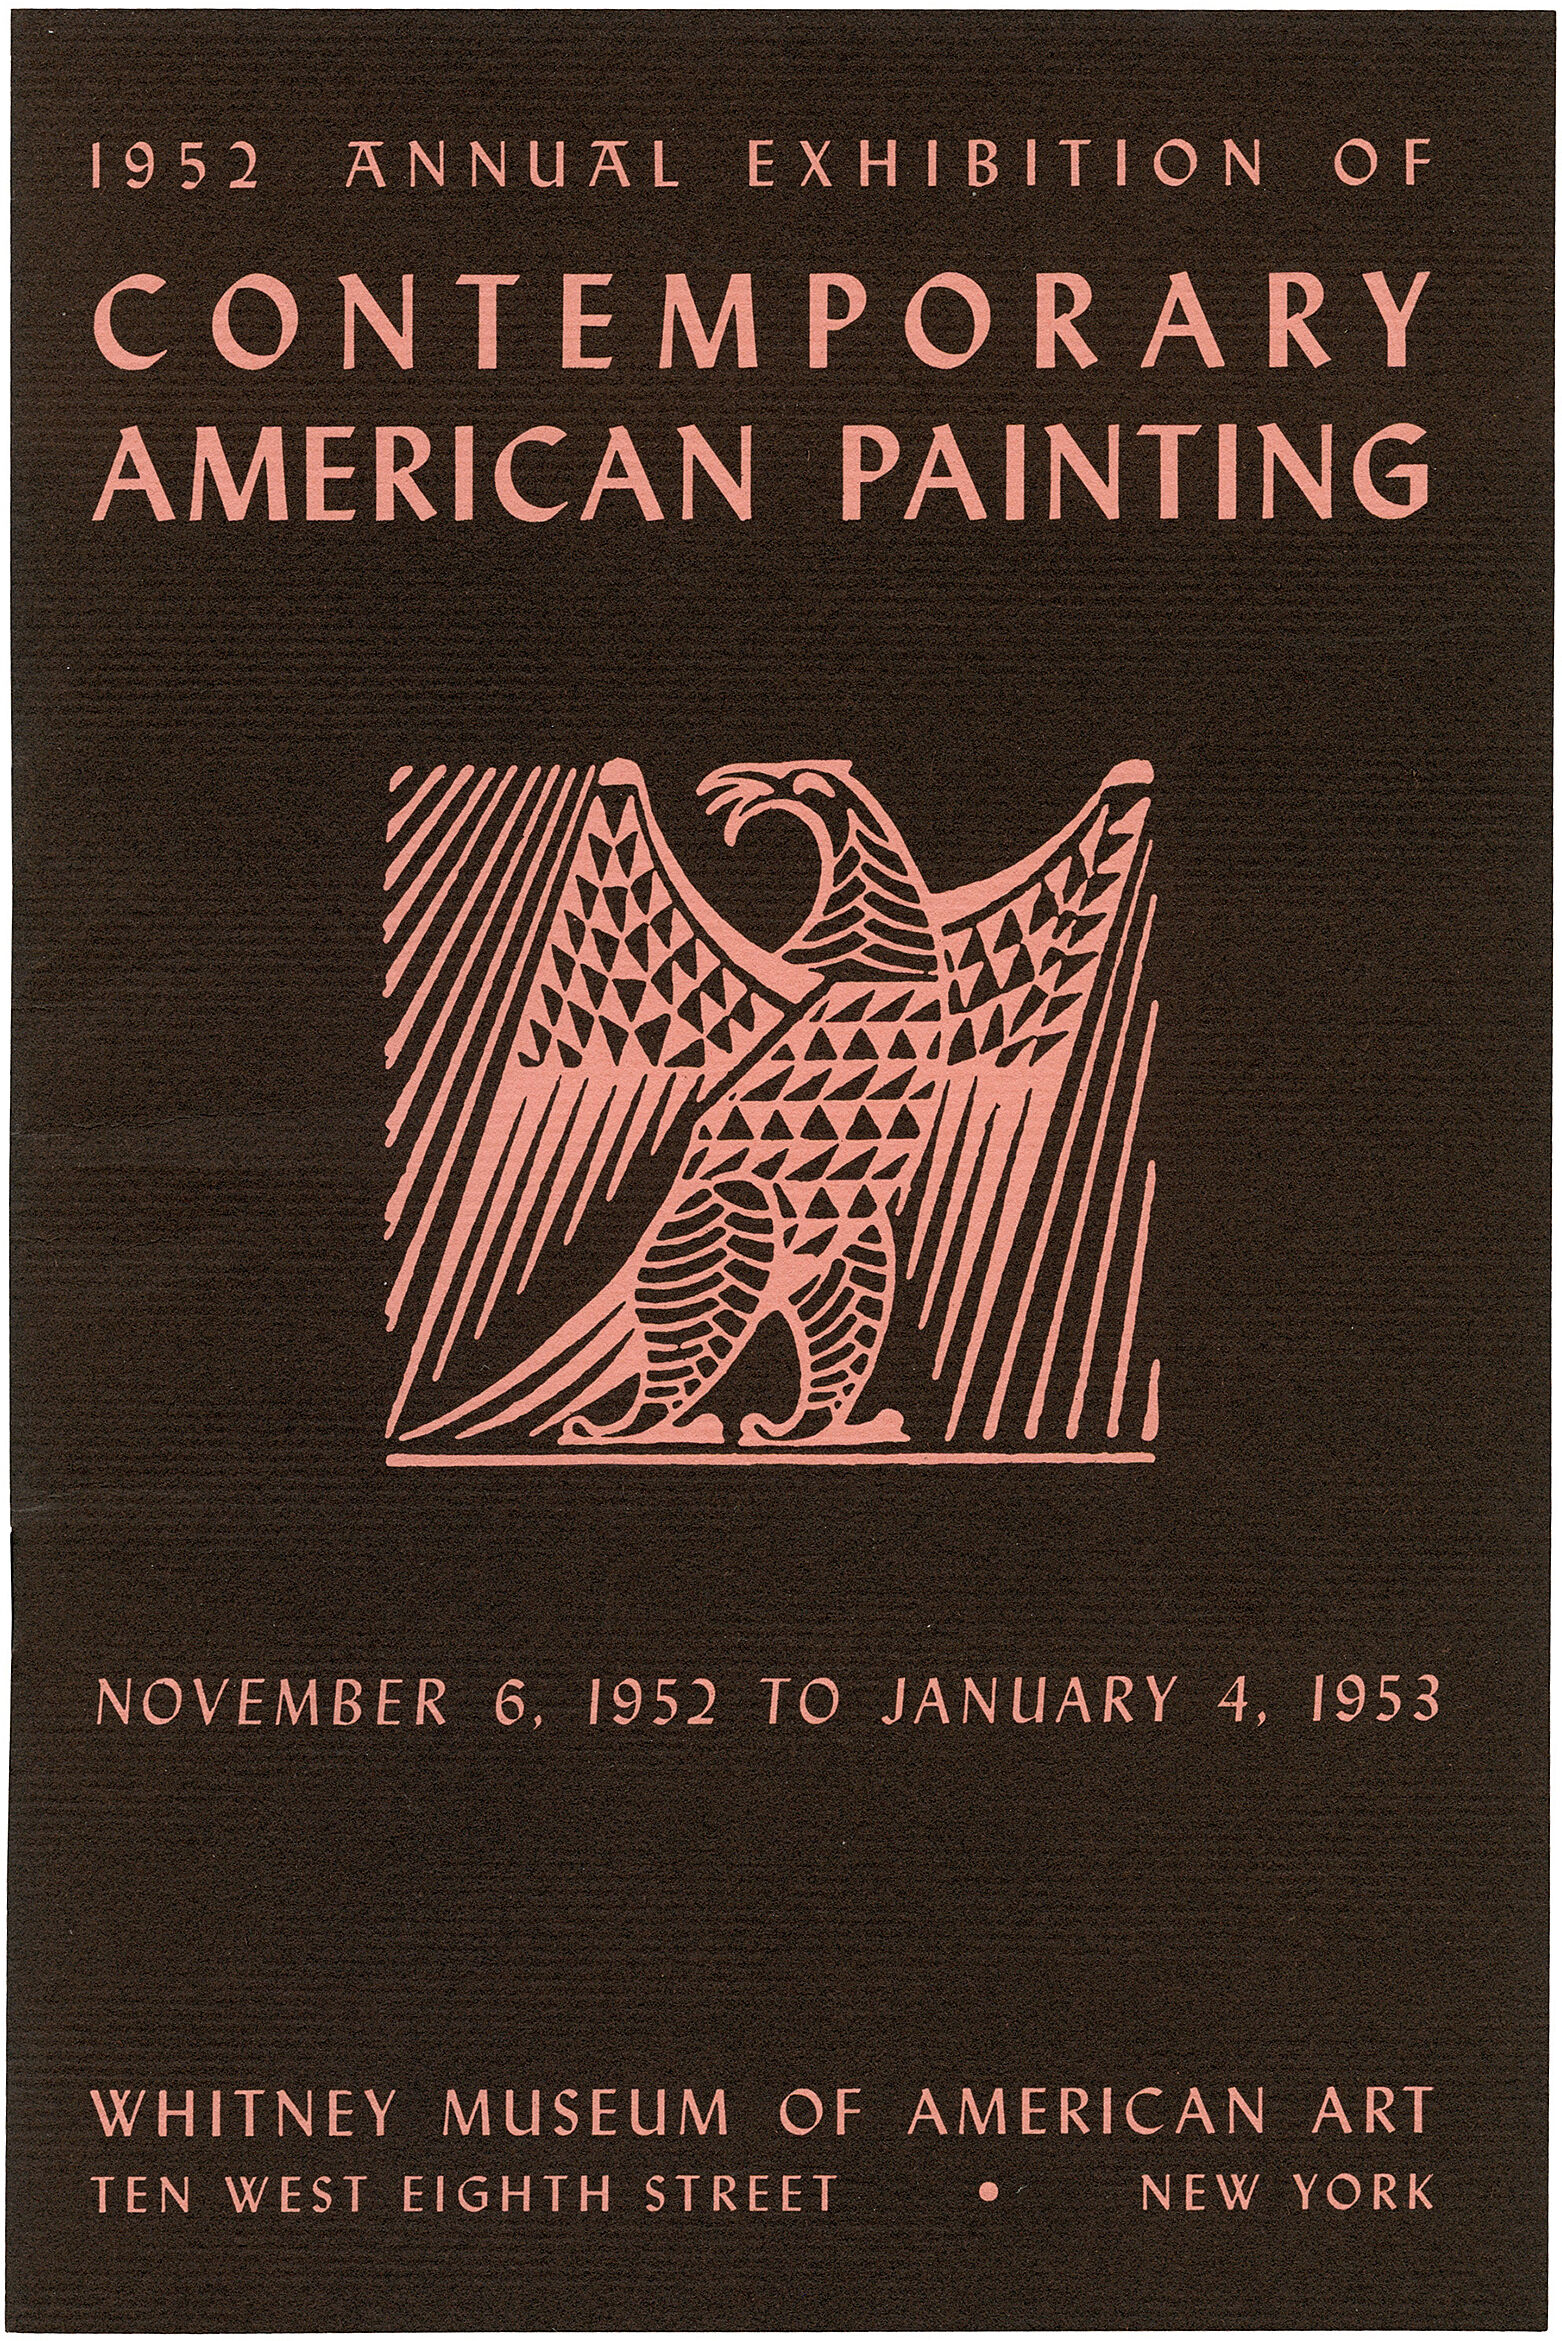 Cover for 1952 Annual Exhibition of Contemporary American Painting catalogue